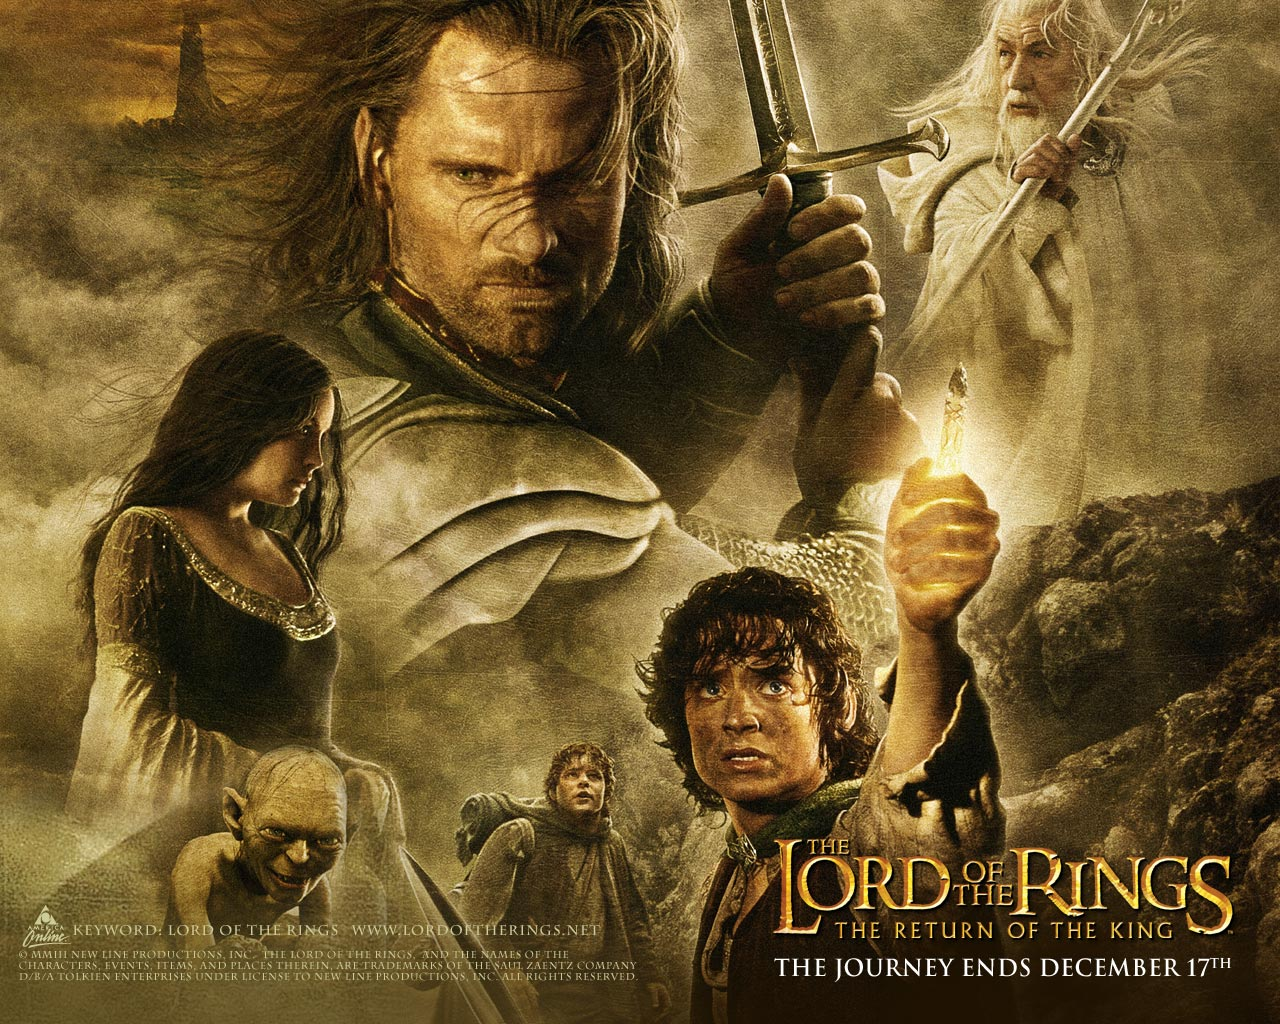 The Lord Of The Rings: The Return Of The King wallpapers, Movie, HQ The Lord  Of The Rings: The Return Of The King pictures | 4K Wallpapers 2019